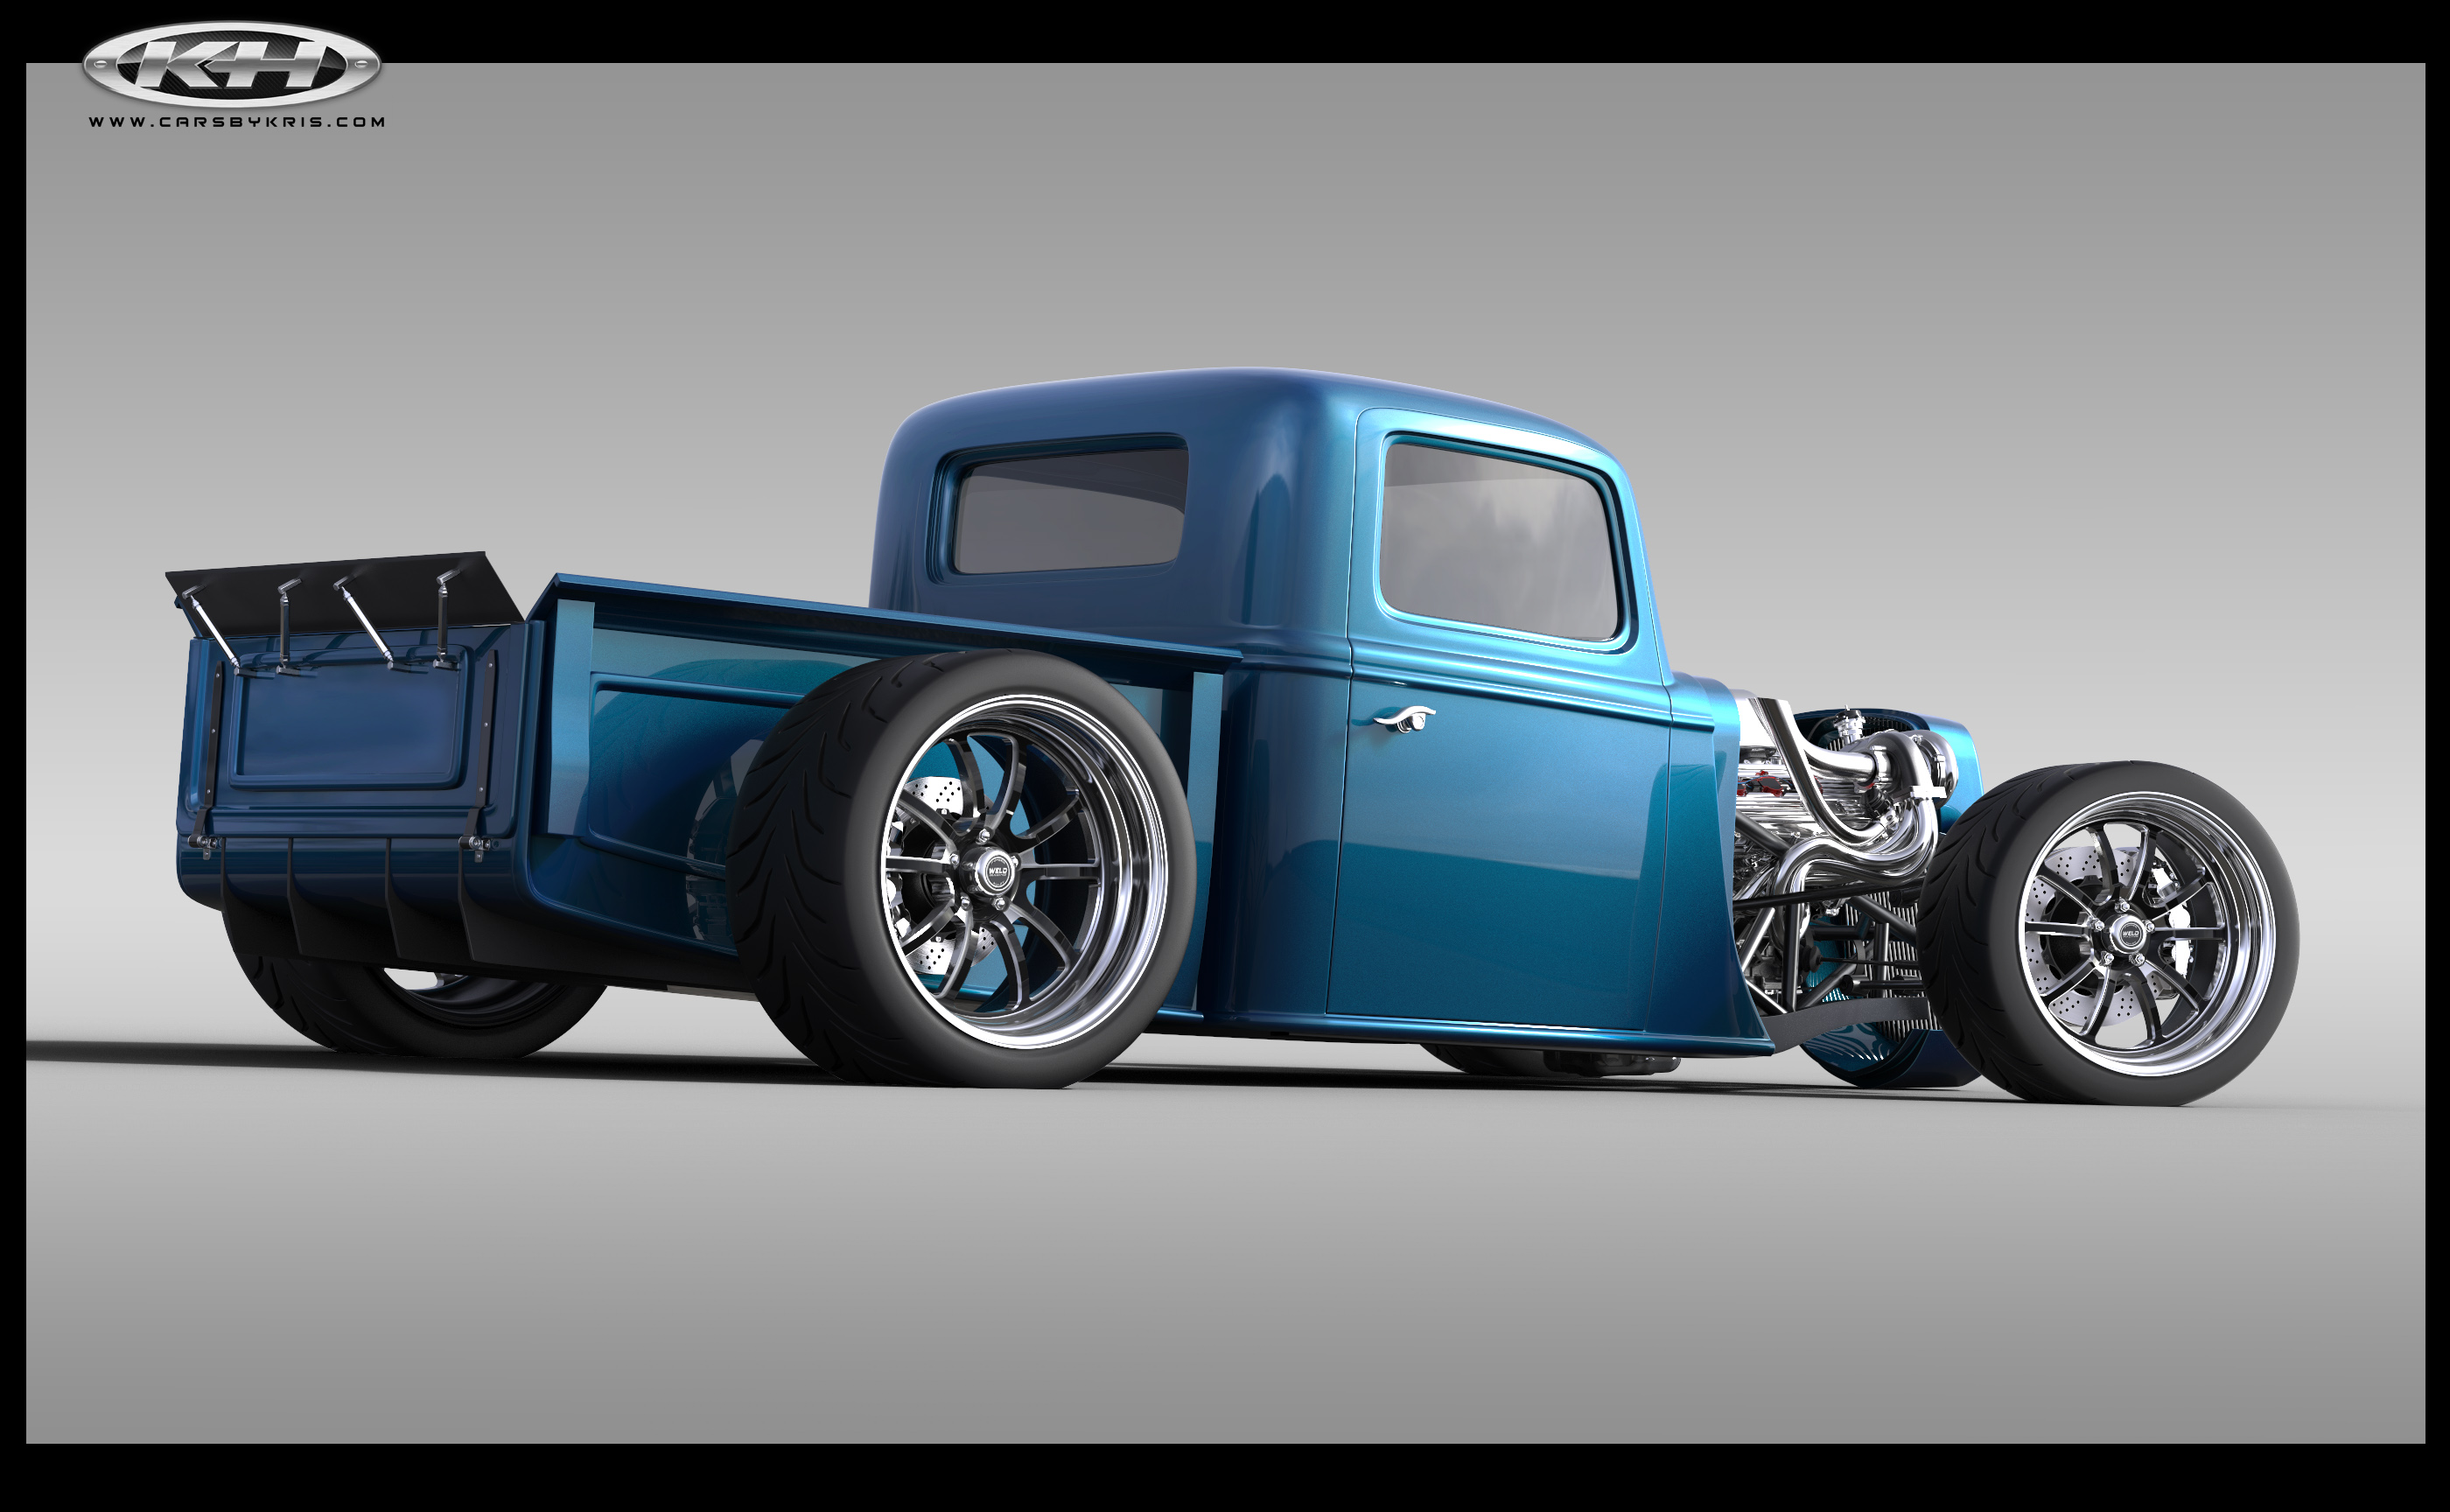 My 1,200hp twin-turbo Coyote powered Truck project for Hot Rod Magazine